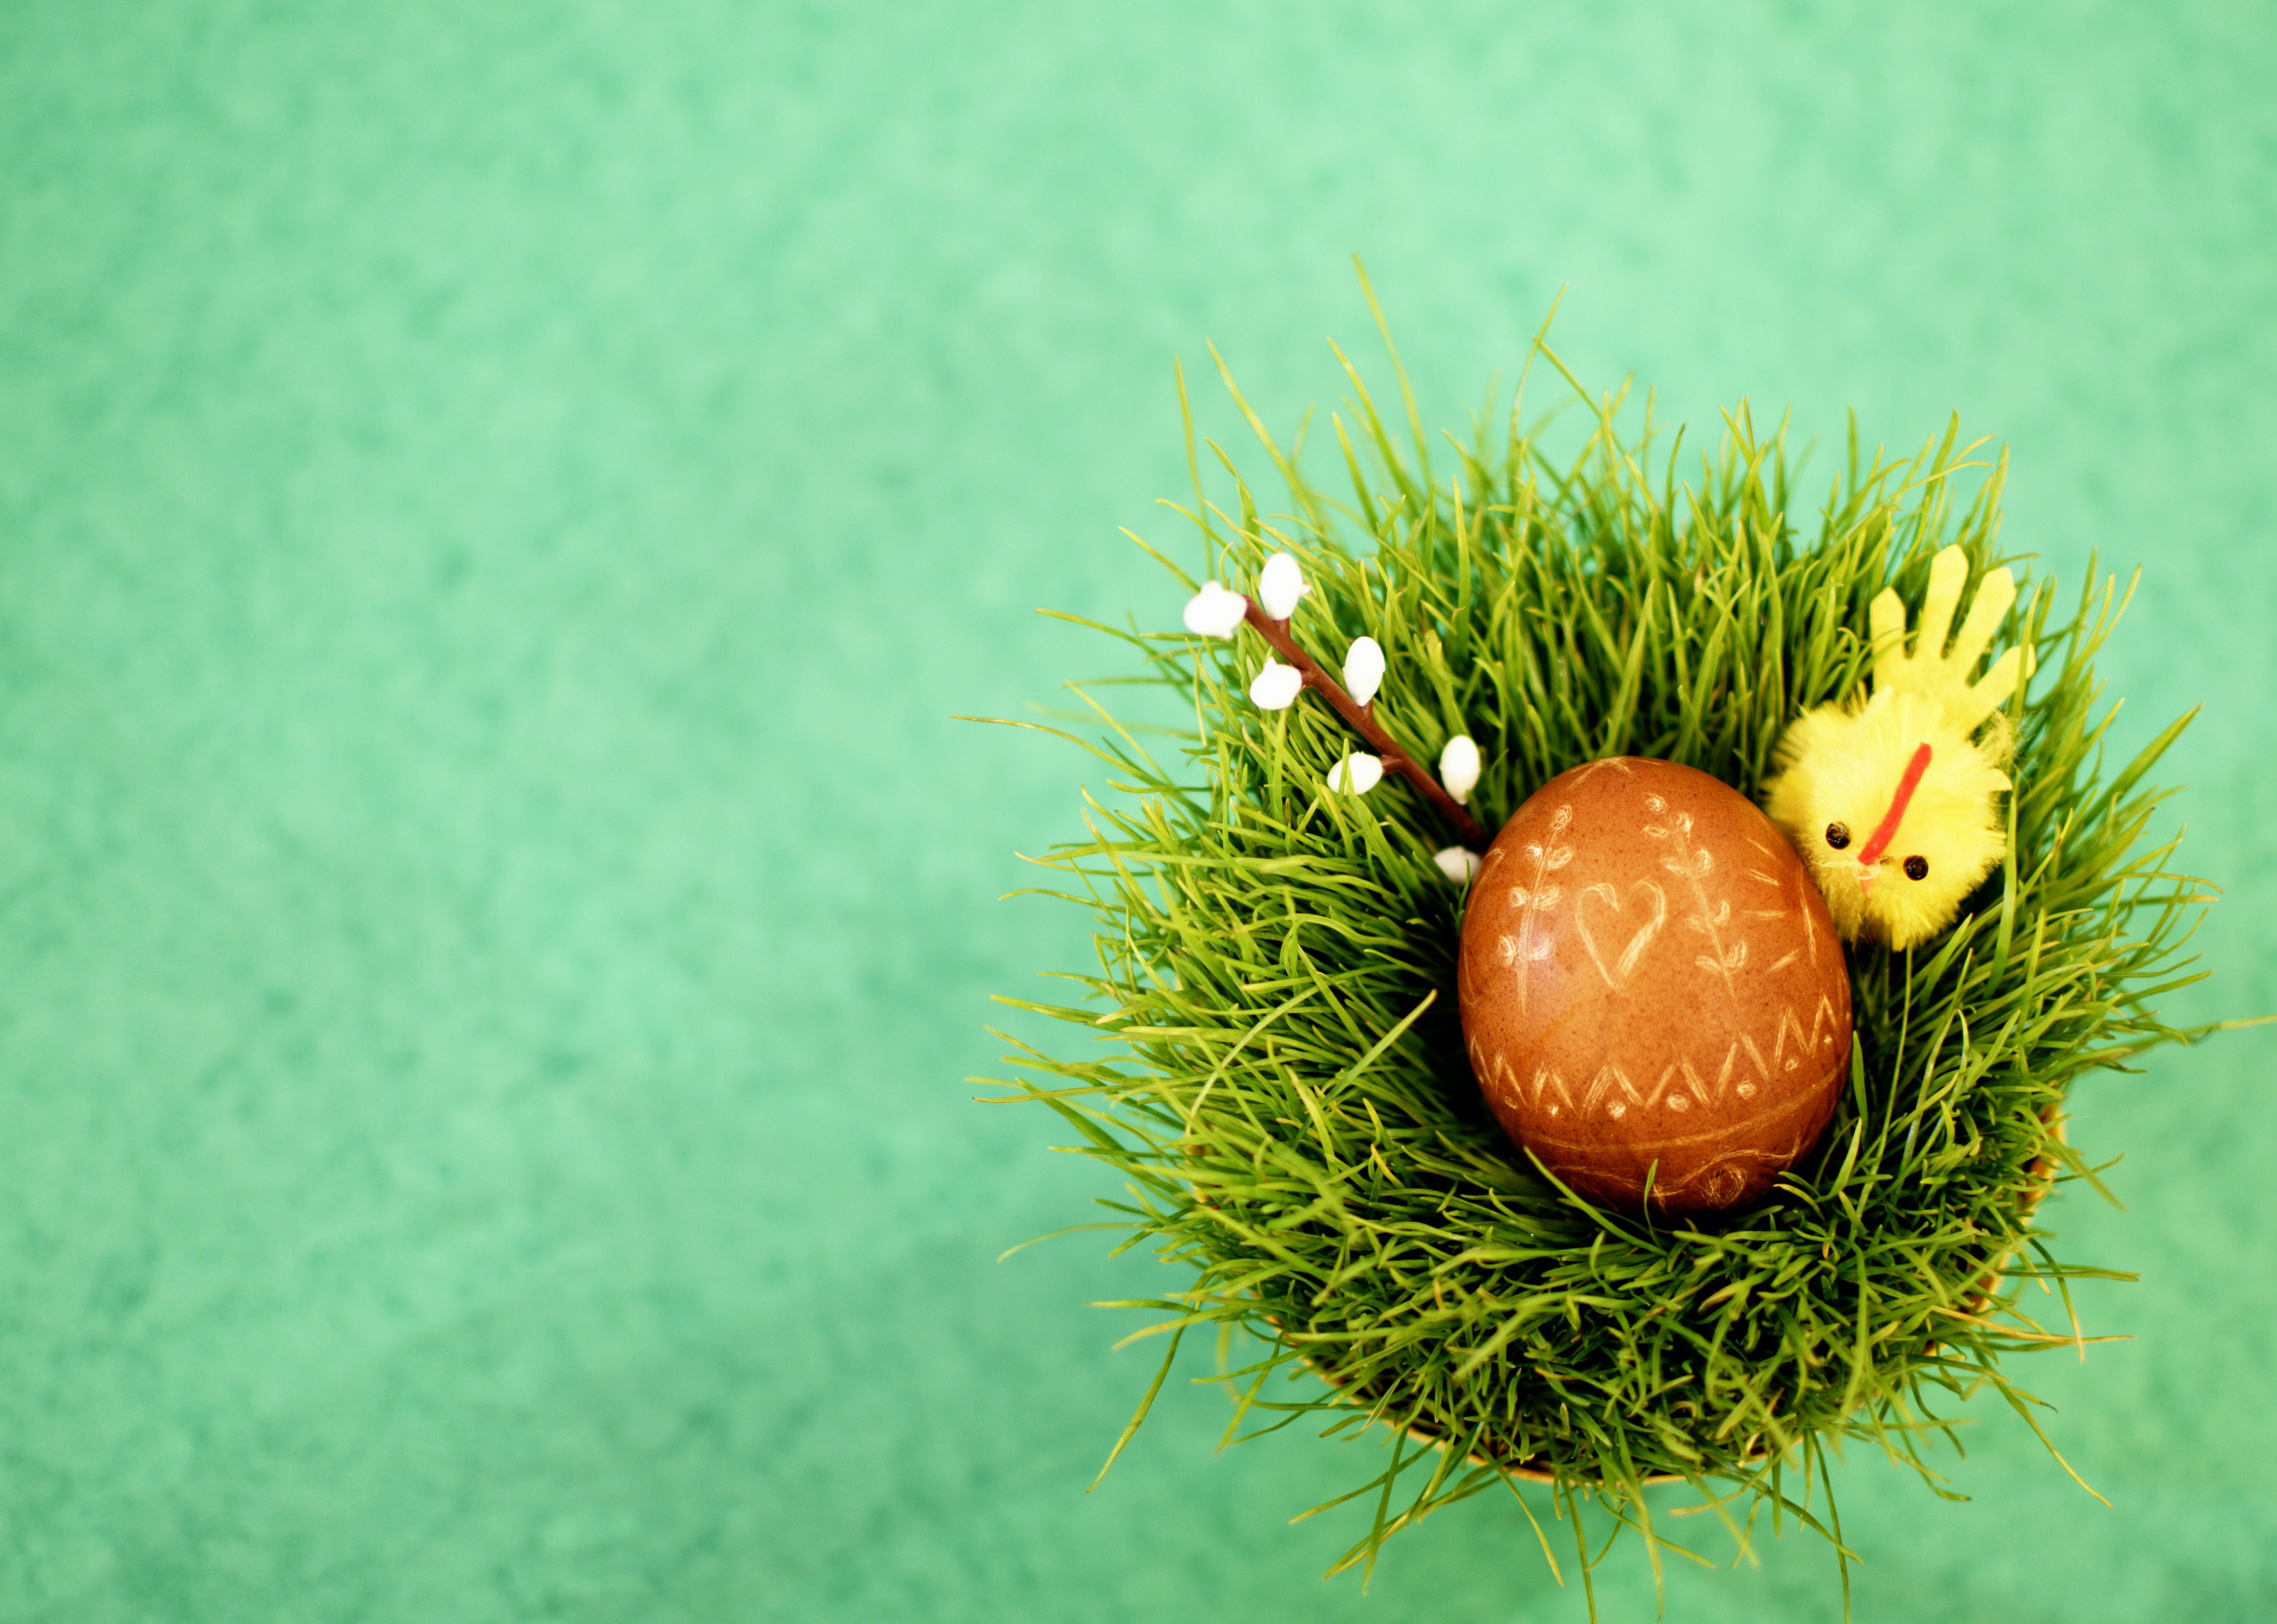 Free stock photo of food, night, grass, easter